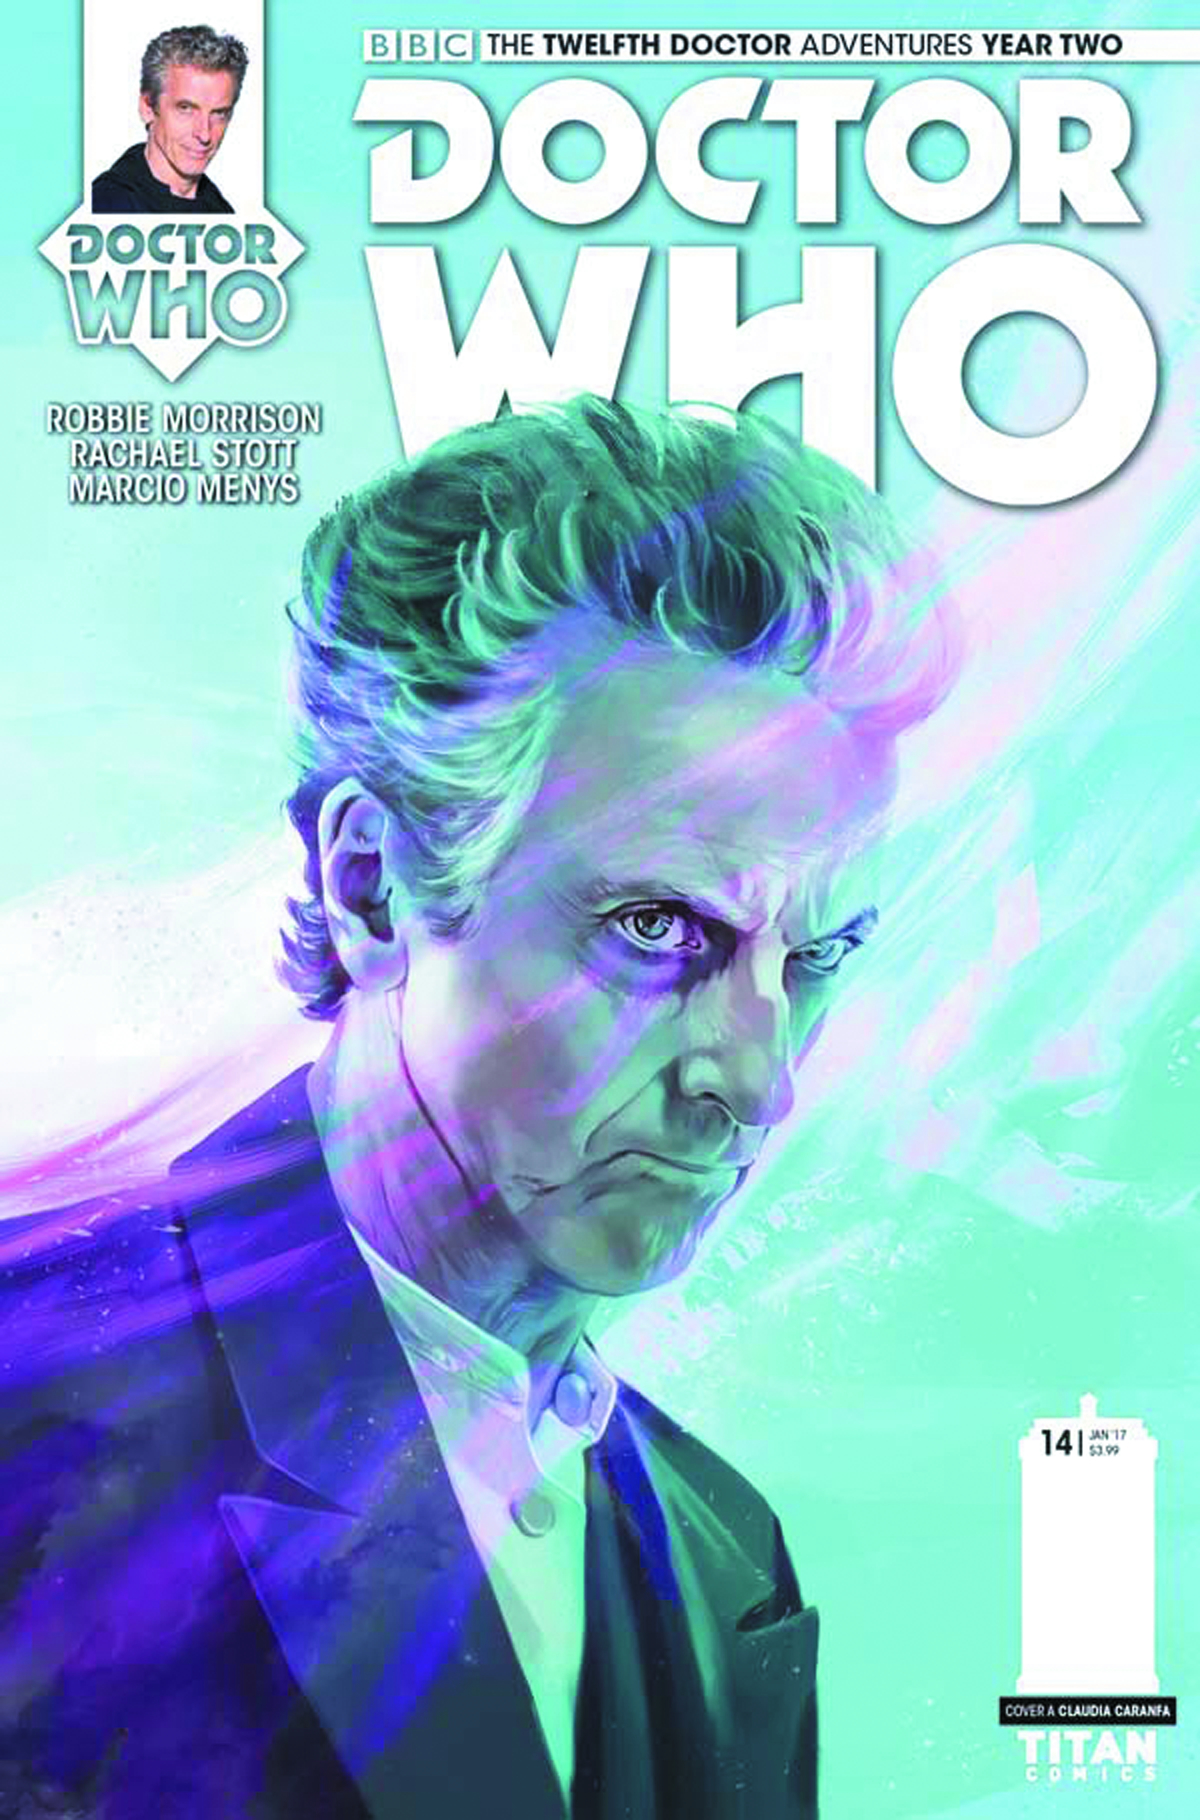 DOCTOR WHO 12TH YEAR TWO #14 CVR A CARANFA